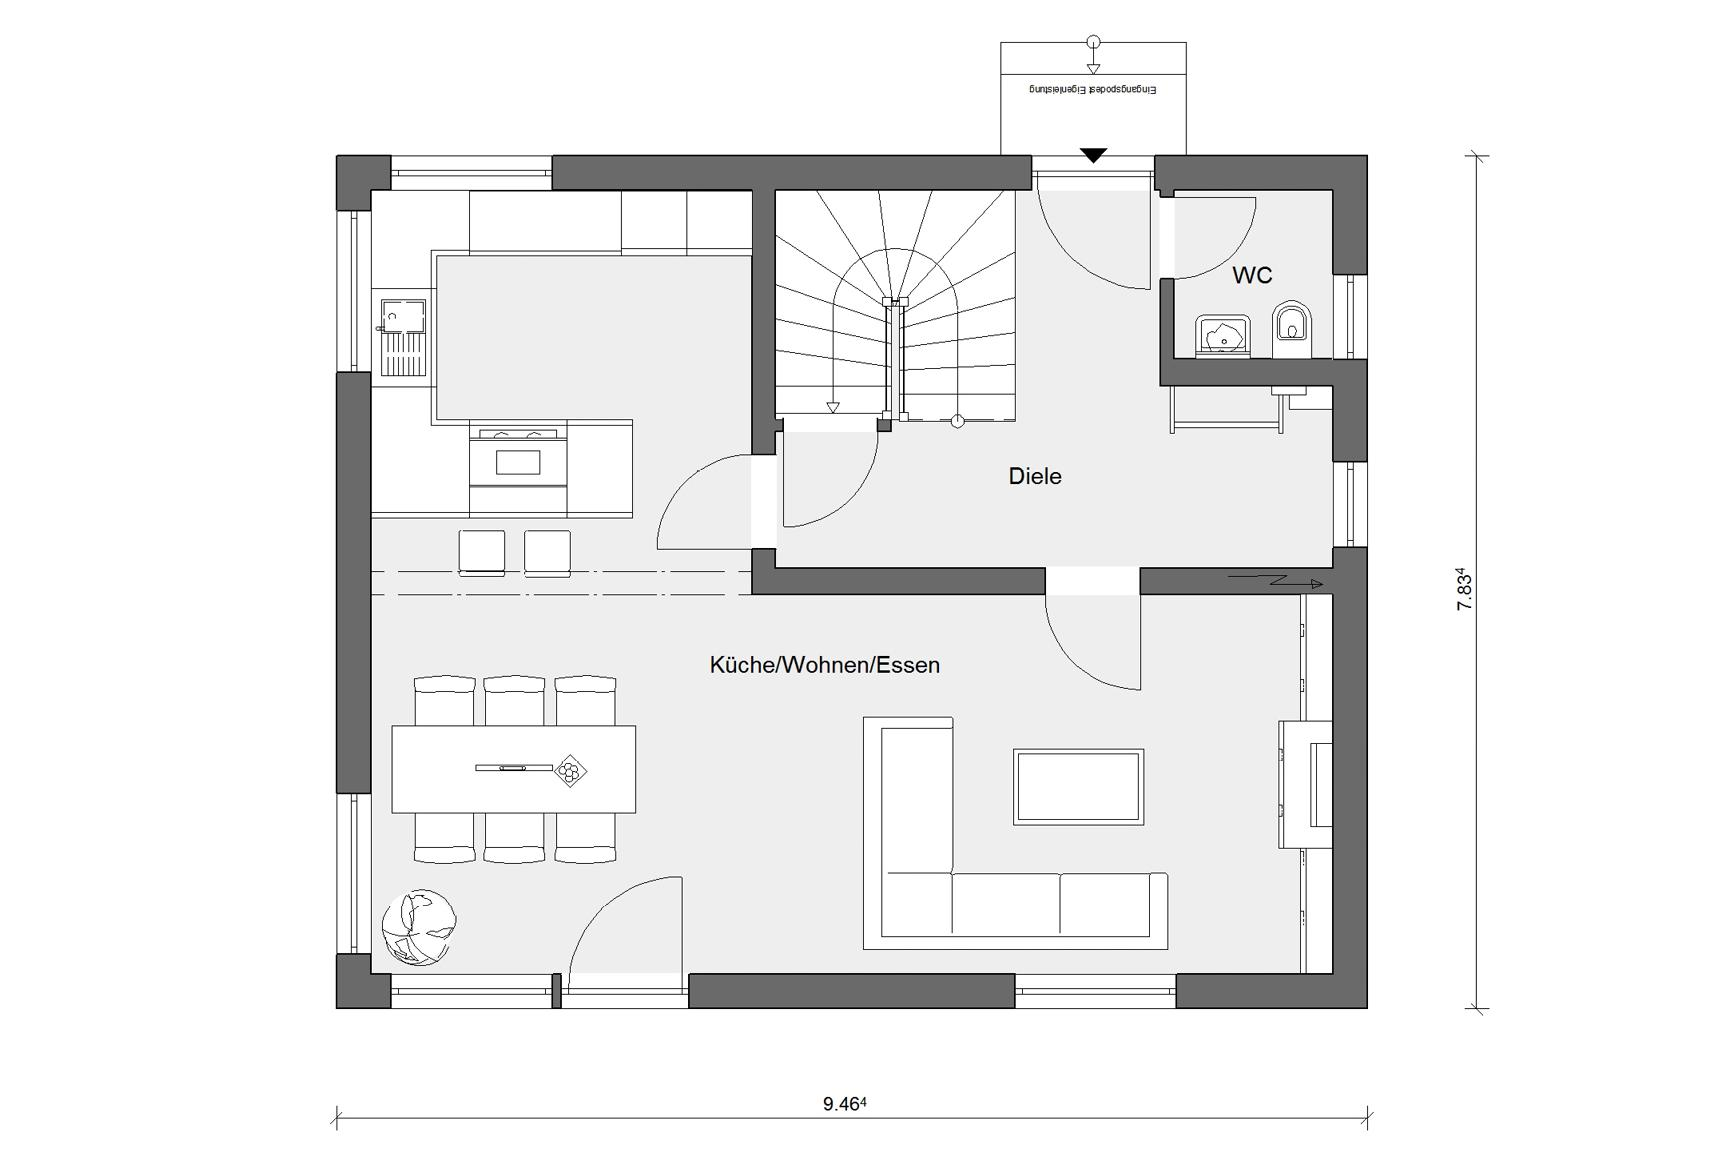 Floor plan ground floor E 15-121.9 House with pitched roof